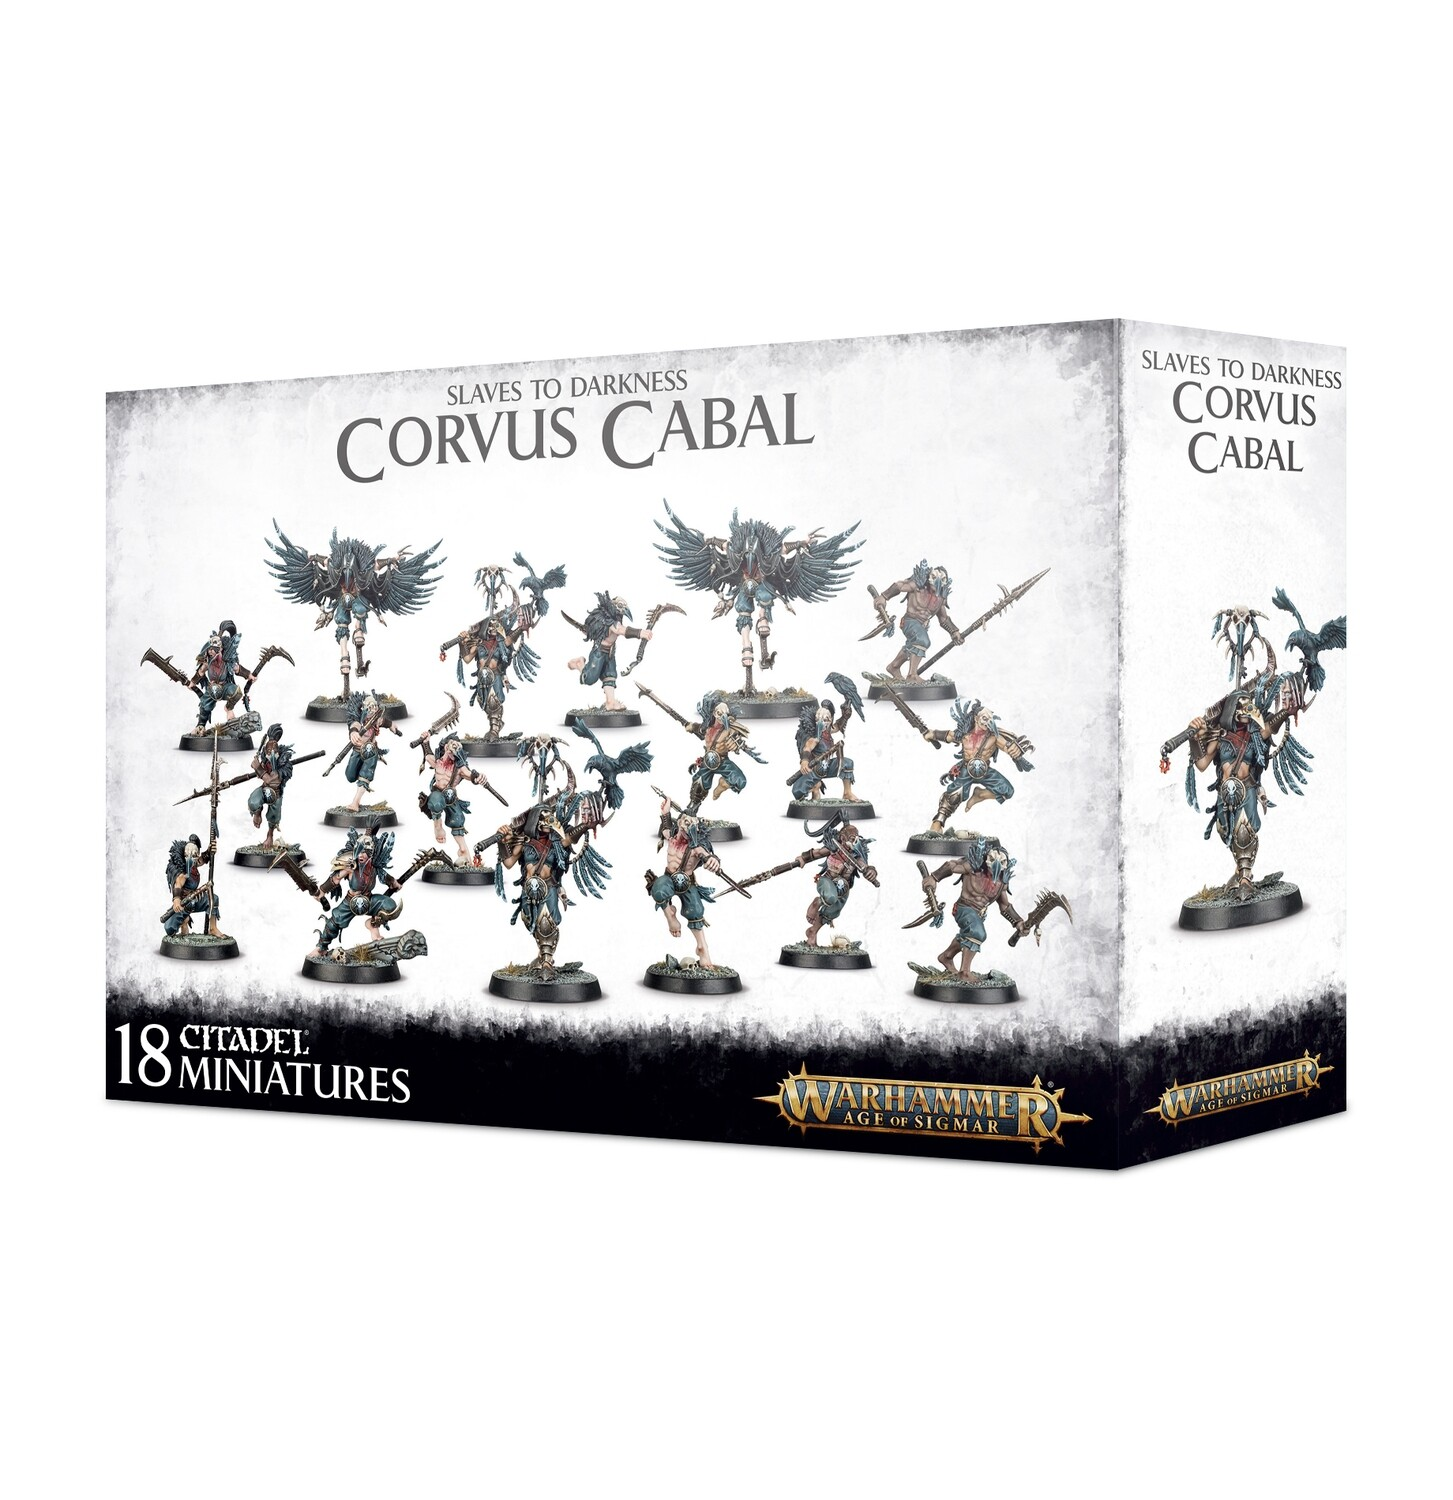 Slaves to Darkness: Corvus Cabal